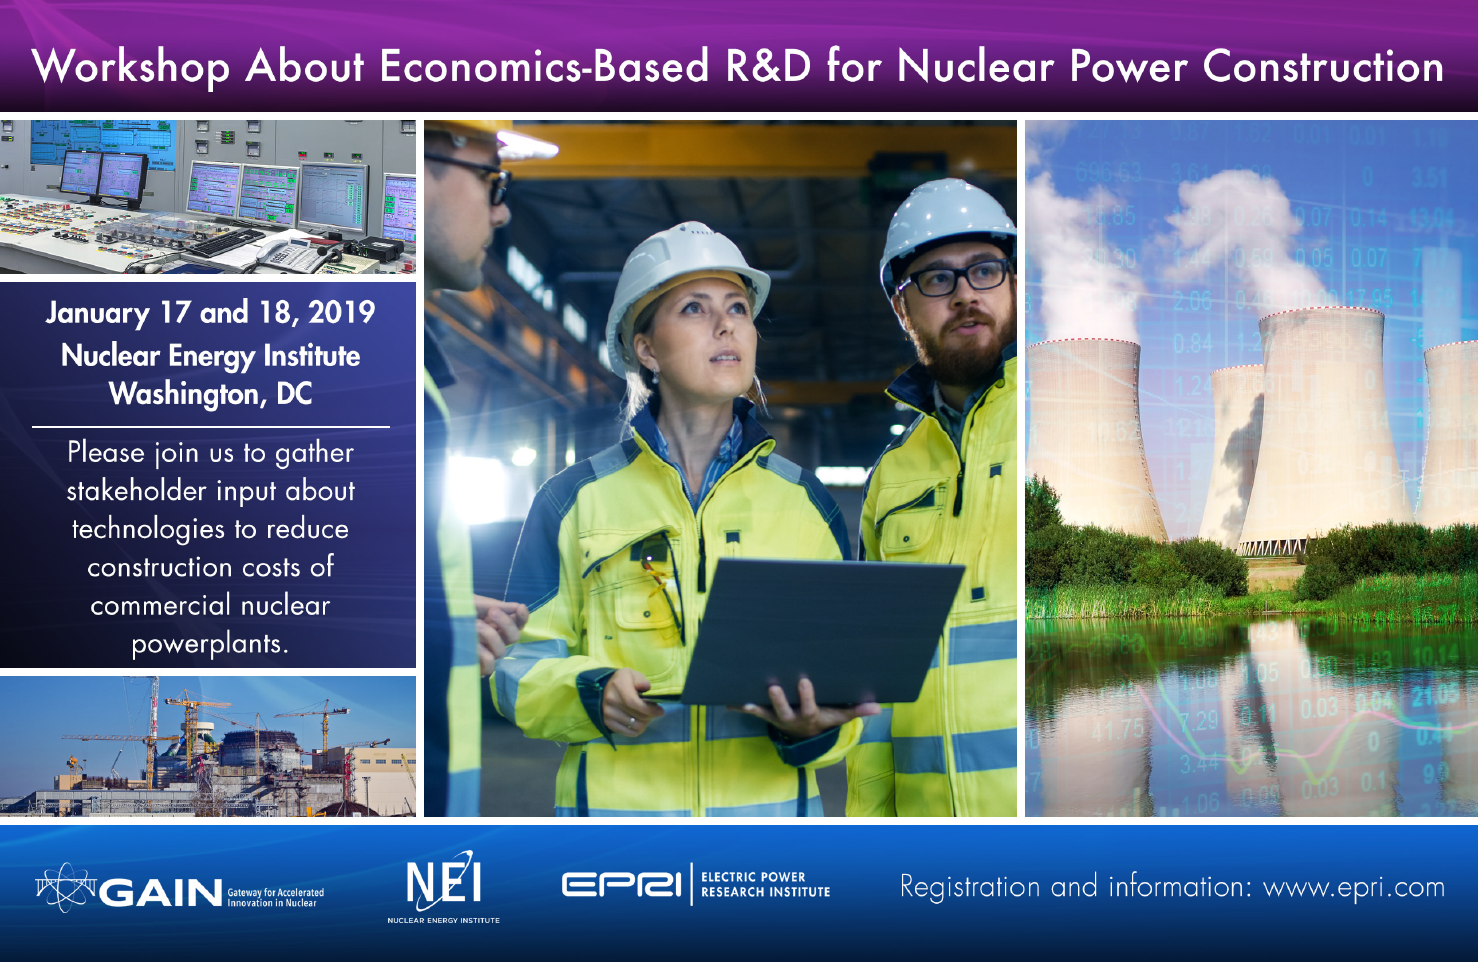 Image about the Workshop about economics-based R&D for Nuclear Power Construction